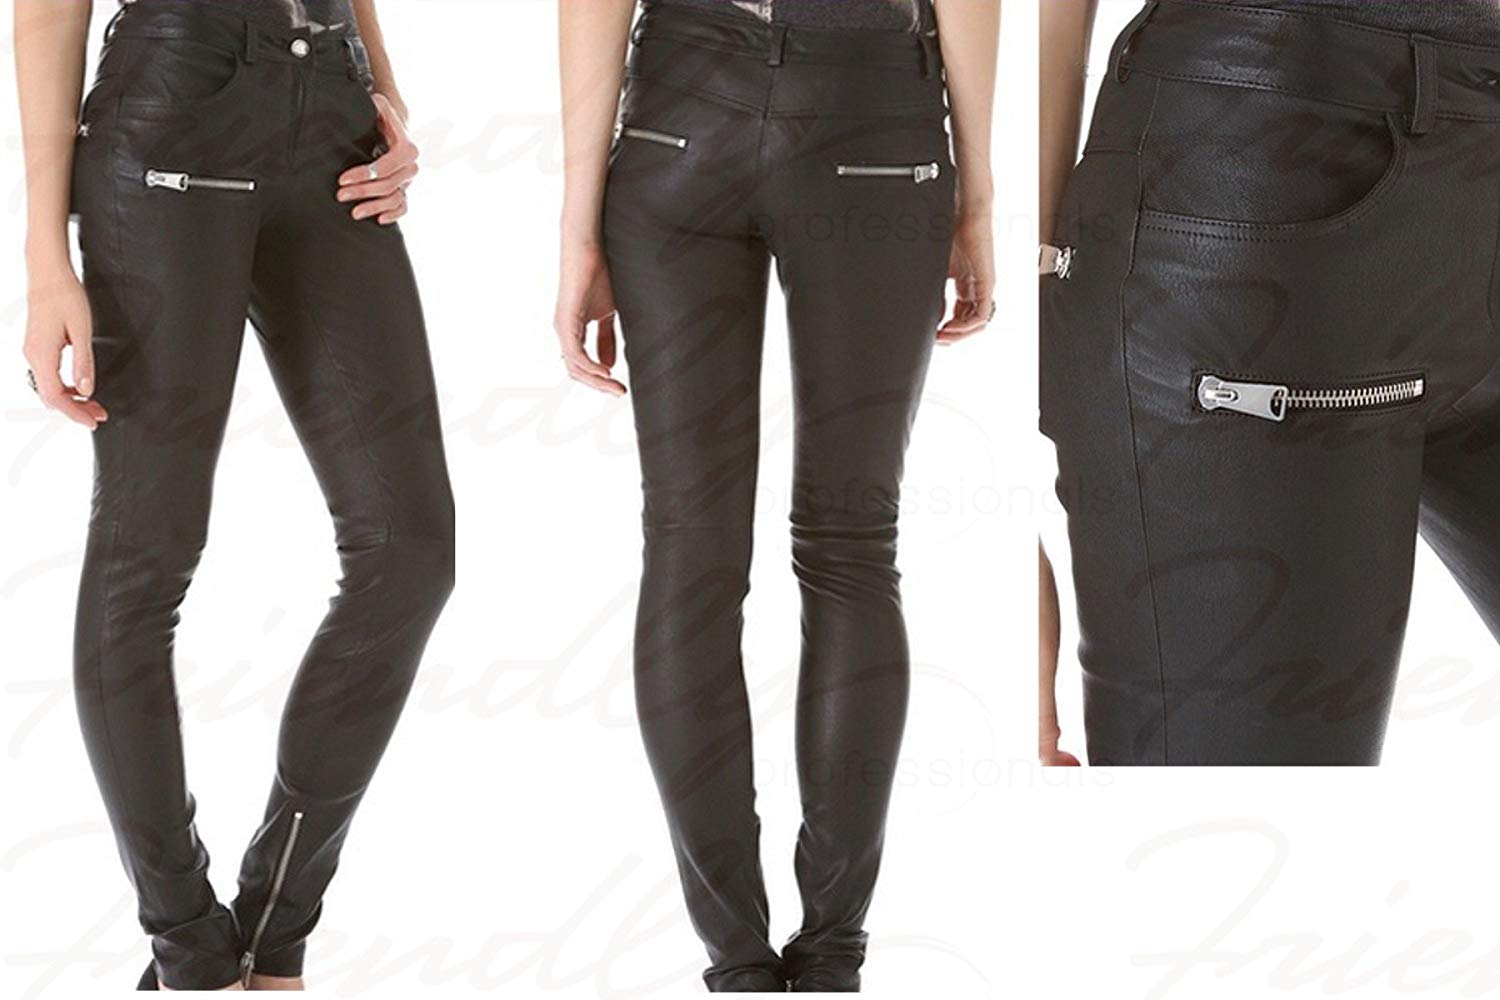 Leather pants for women amazon.com : leather pants for women girls teens genuine leather pants hot  design RHYZFTV